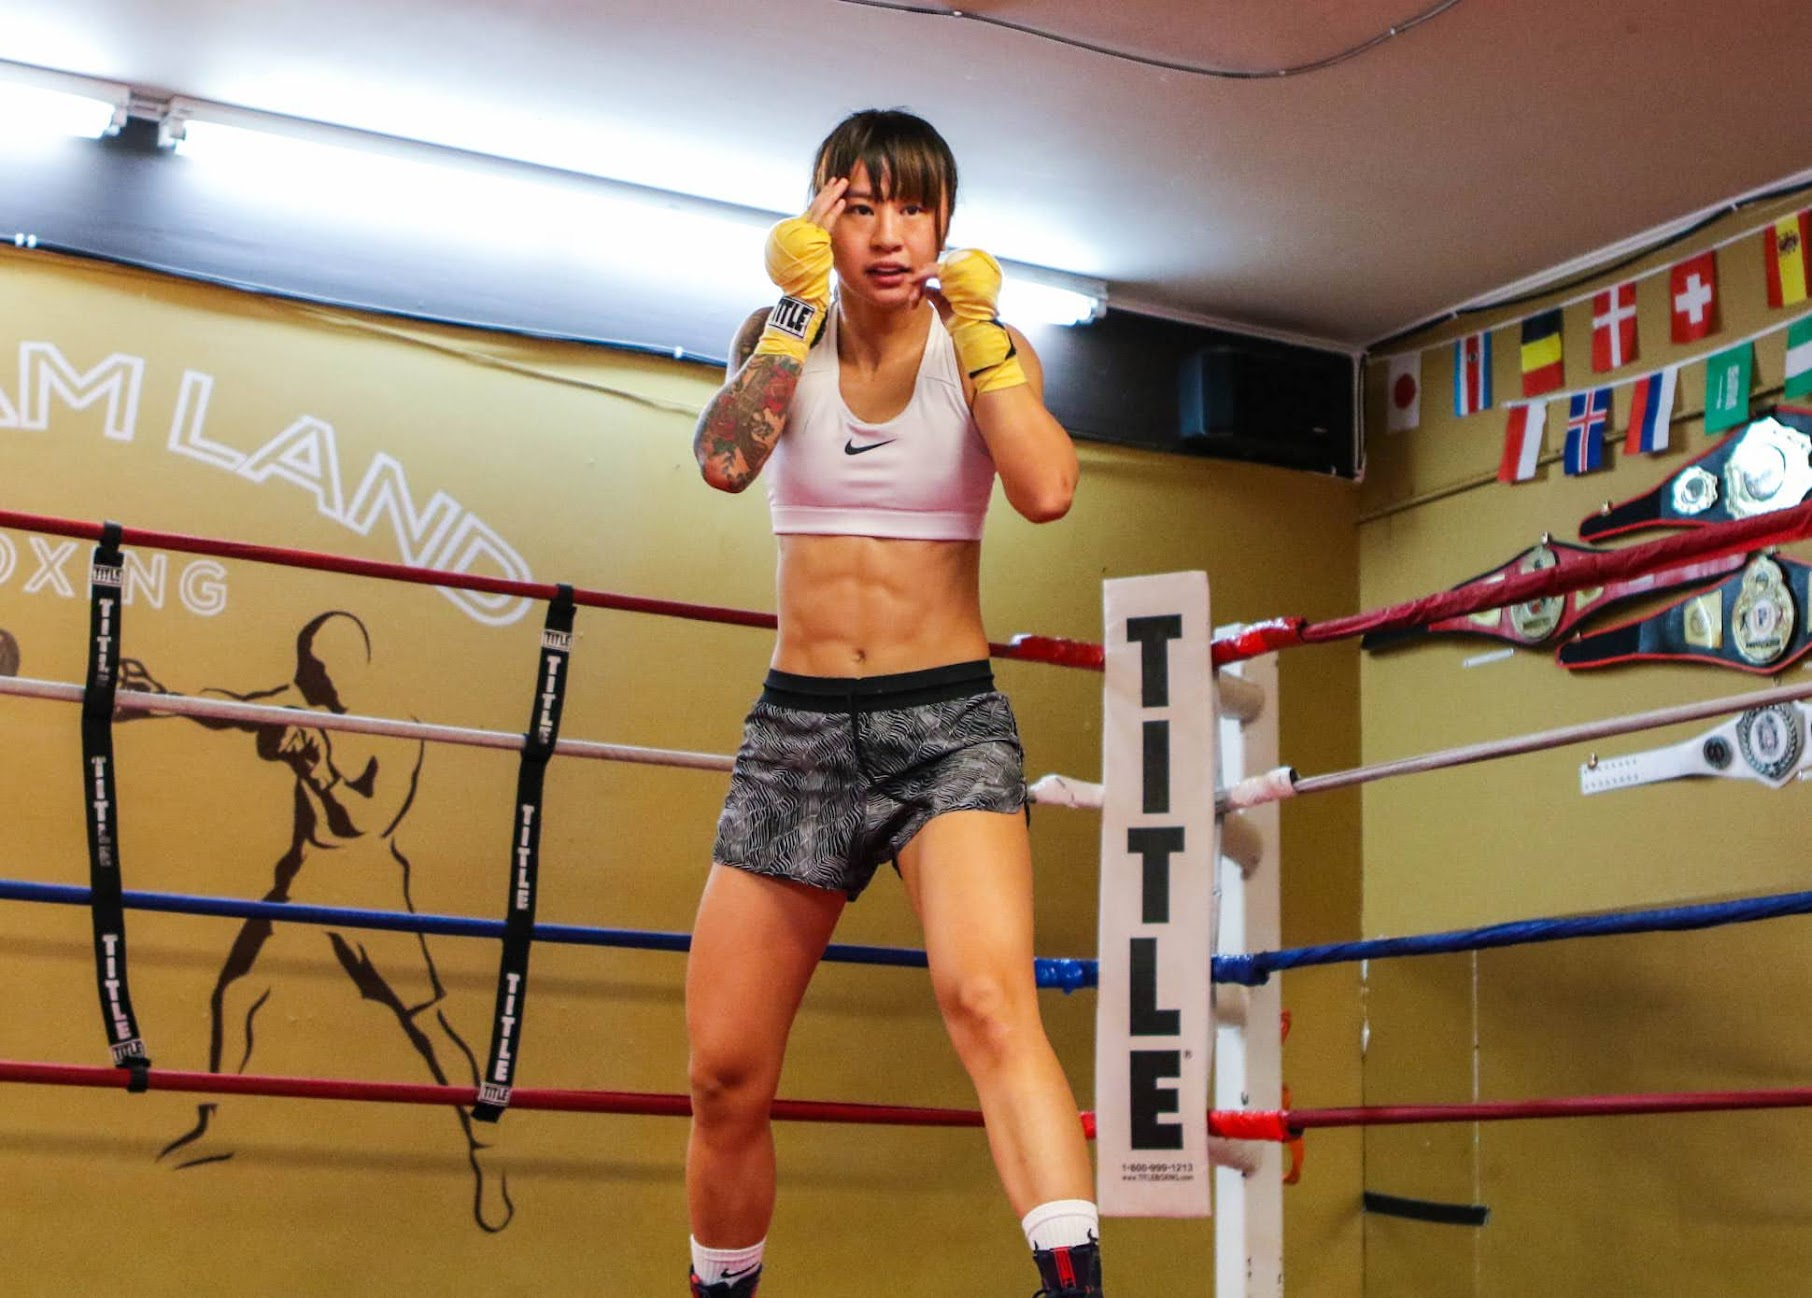 Vicky Zhao training for her professional debut at Dreamland Boxing in San Jose, CA